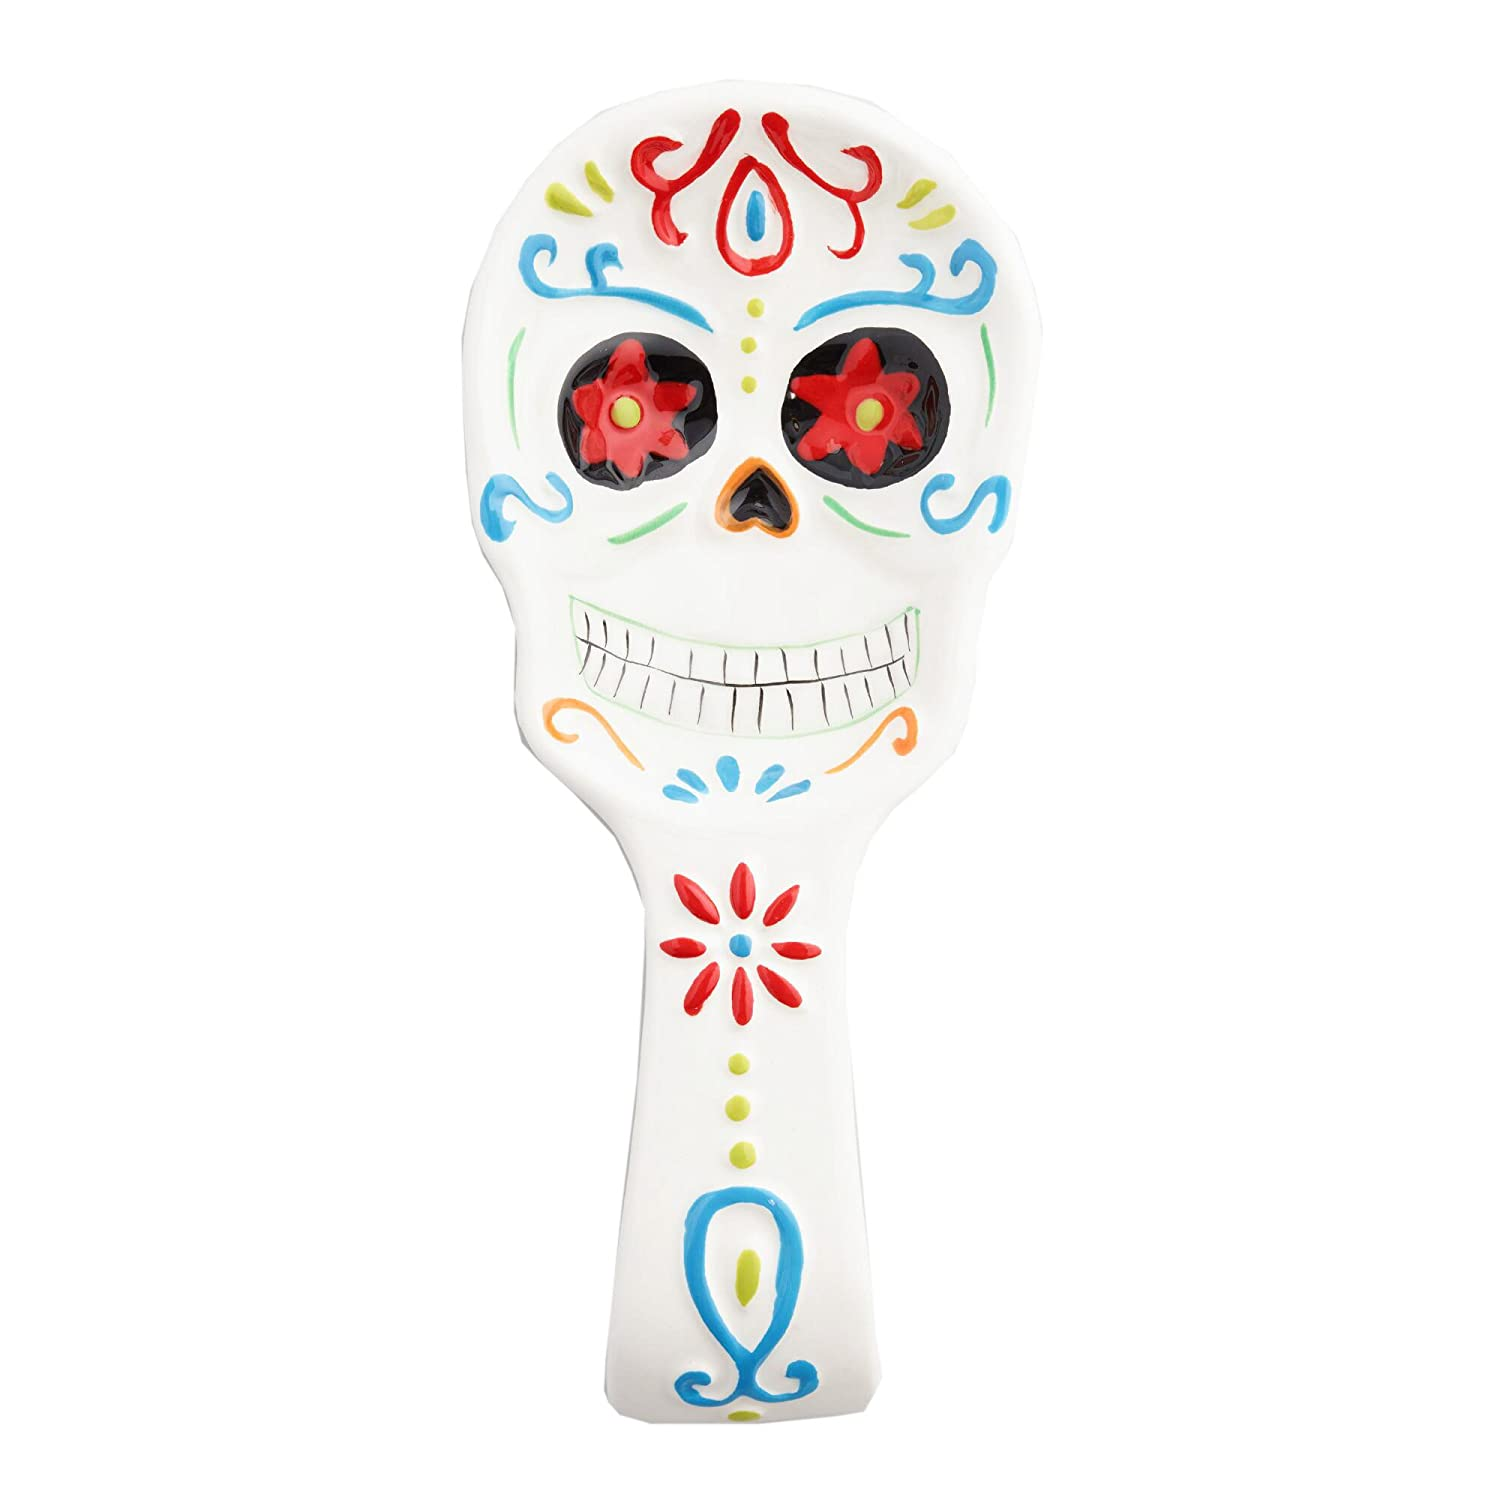 World Market Los Muertos Day of Dead Ceramic Spoon Rest – Cooking Utensil Holder | Ladle Rest Cooking Spoon | Novelty Kitchen Tools and Accessories | Presents for Dia De Muertos Collectors